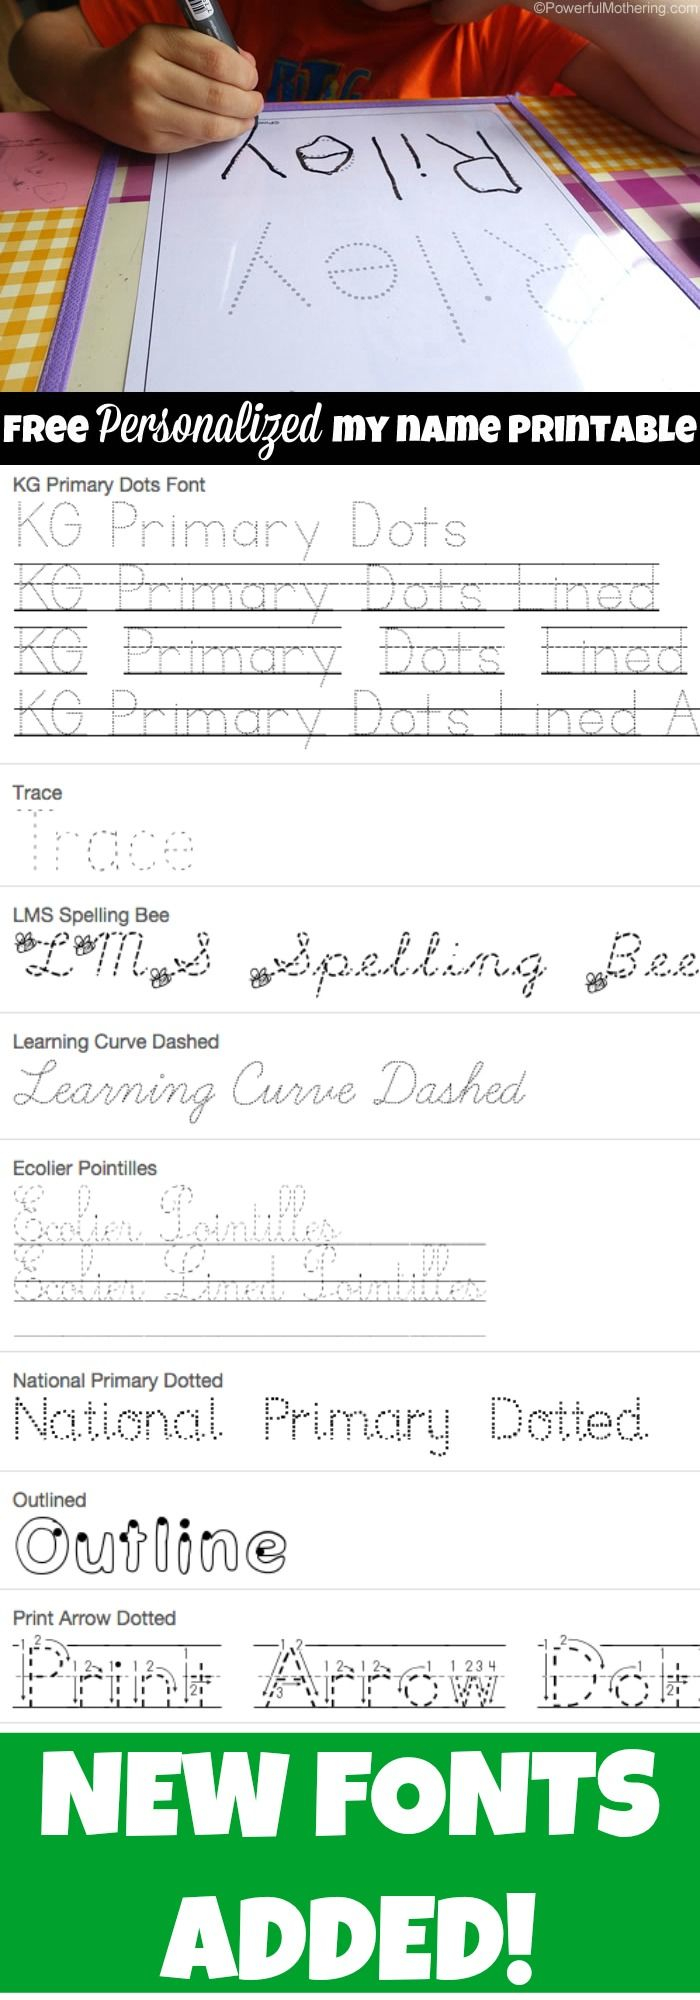 Free Name Tracing Worksheet Printable + Font Choices for Name Tracing Ideas